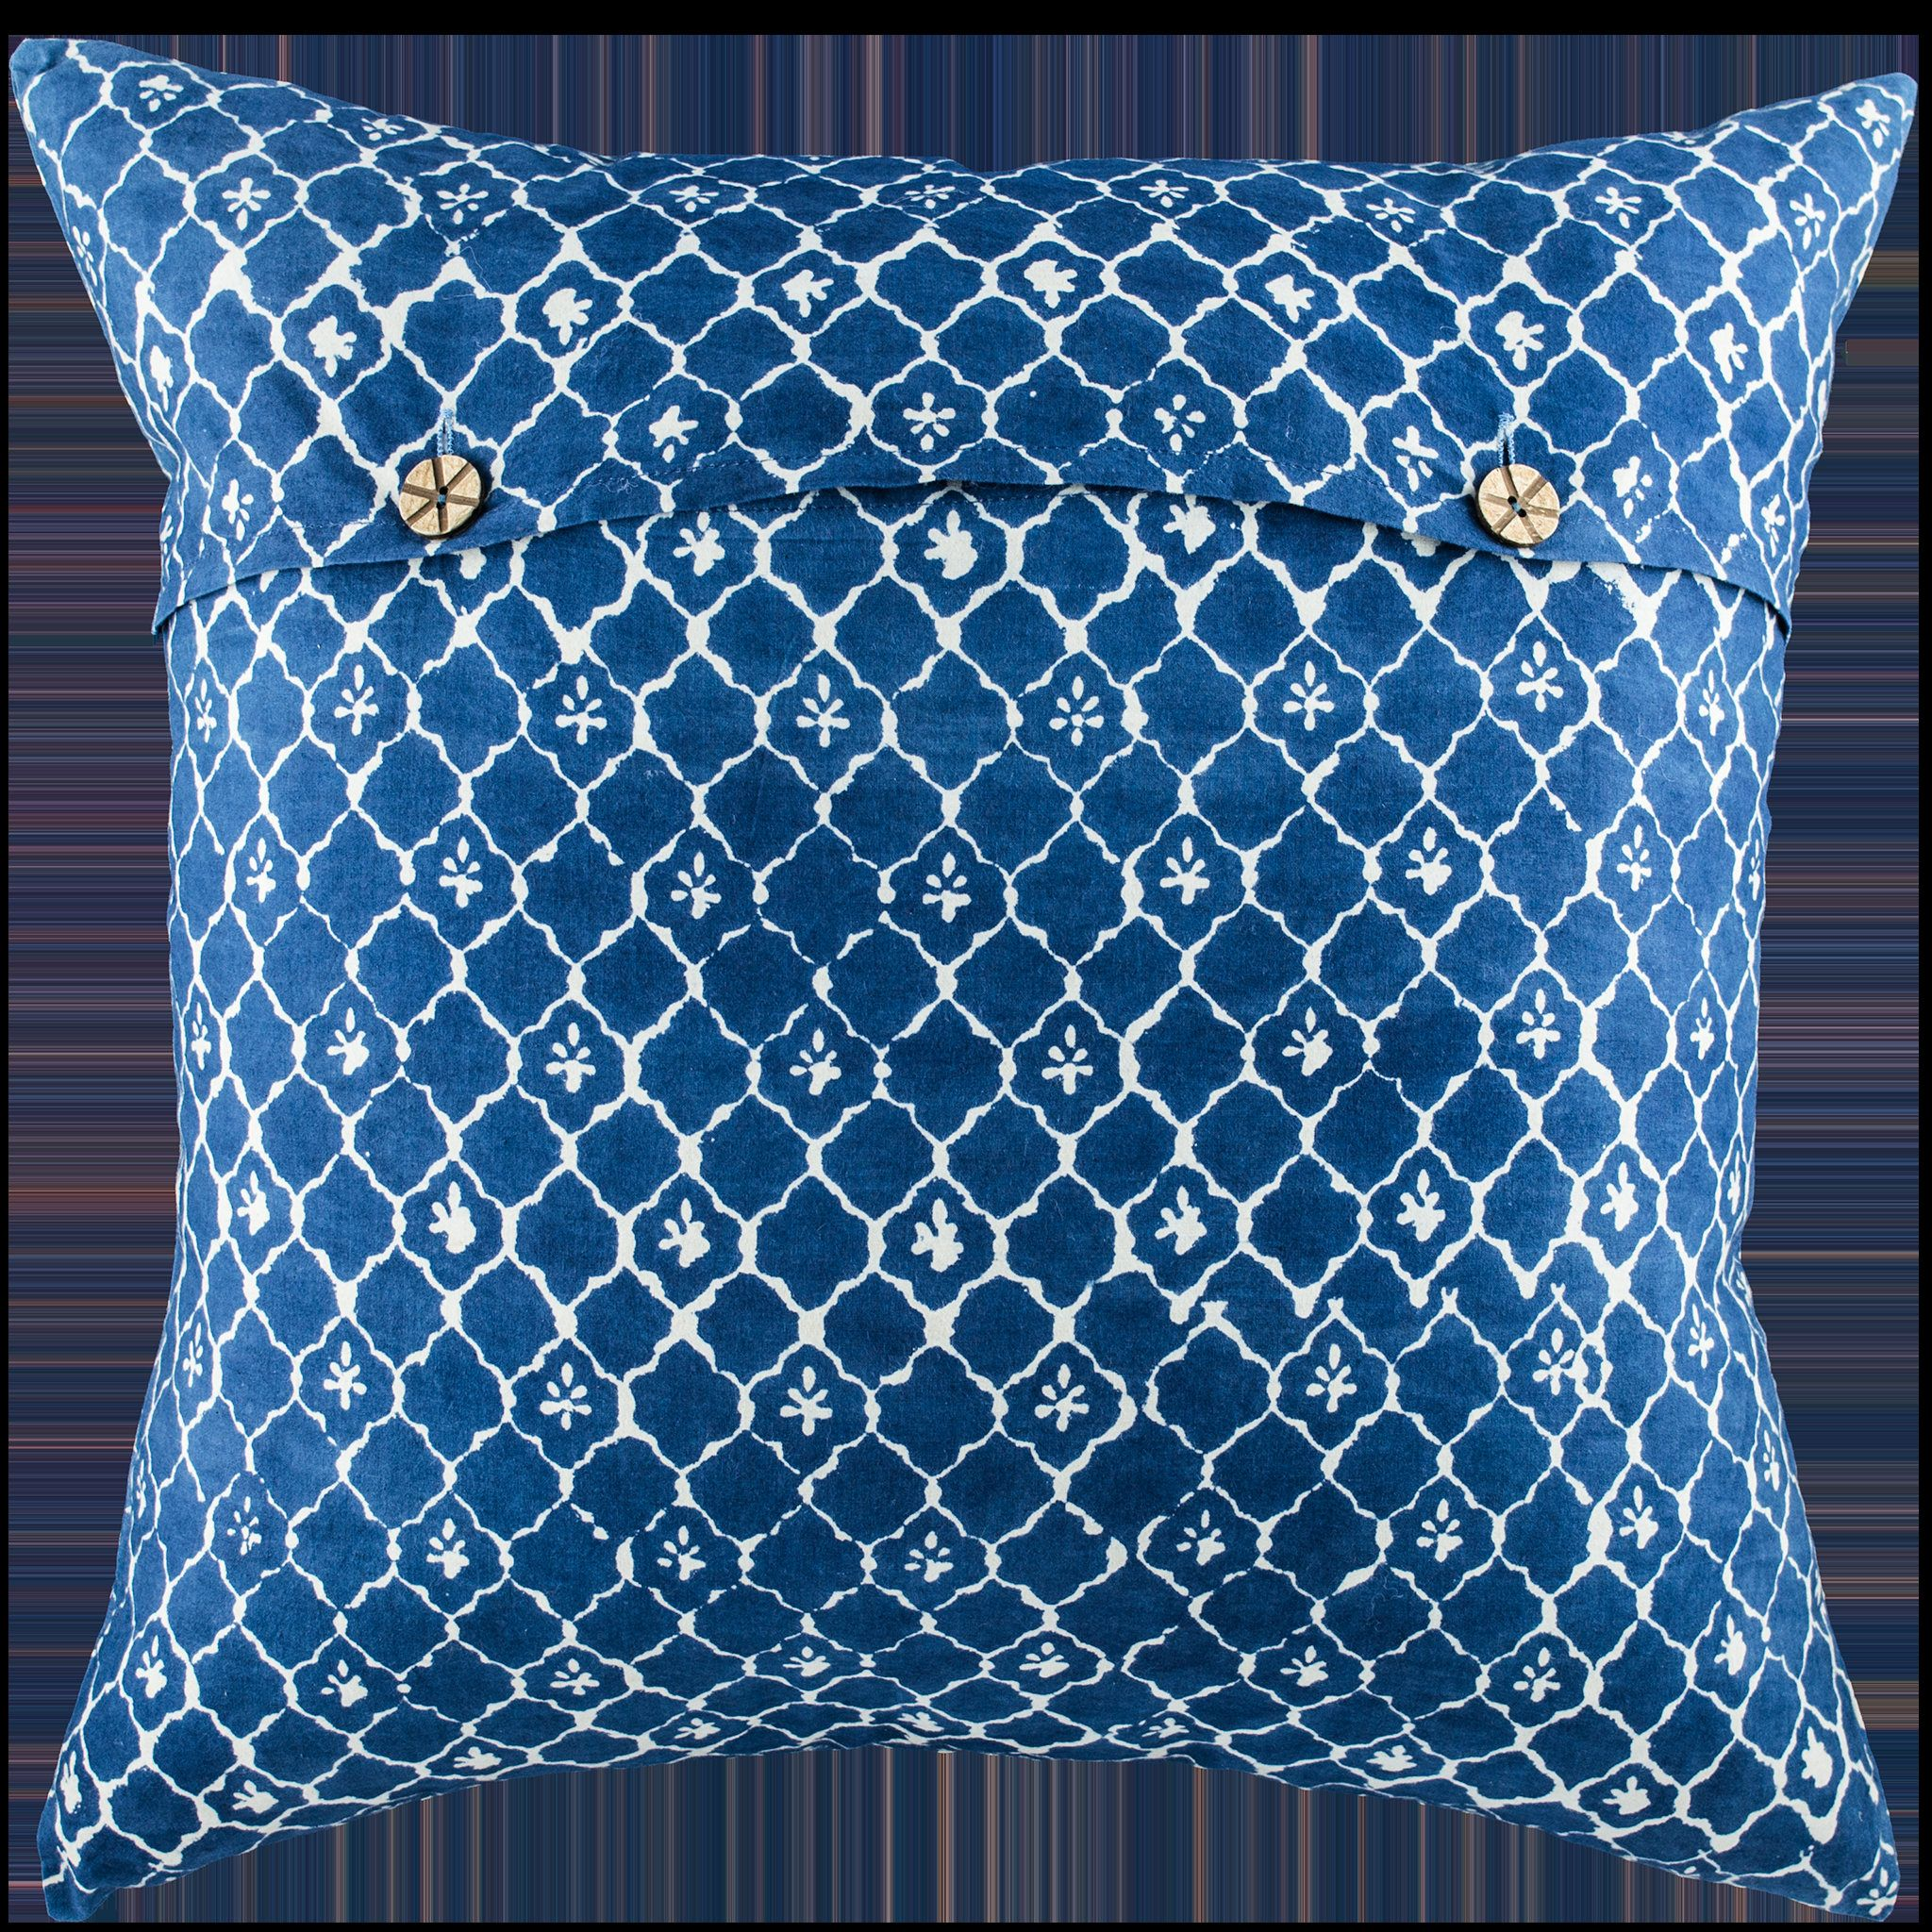 trellis pinstripe oxford wholesale distributor plaid max blue linens pillows pillow of izod formal